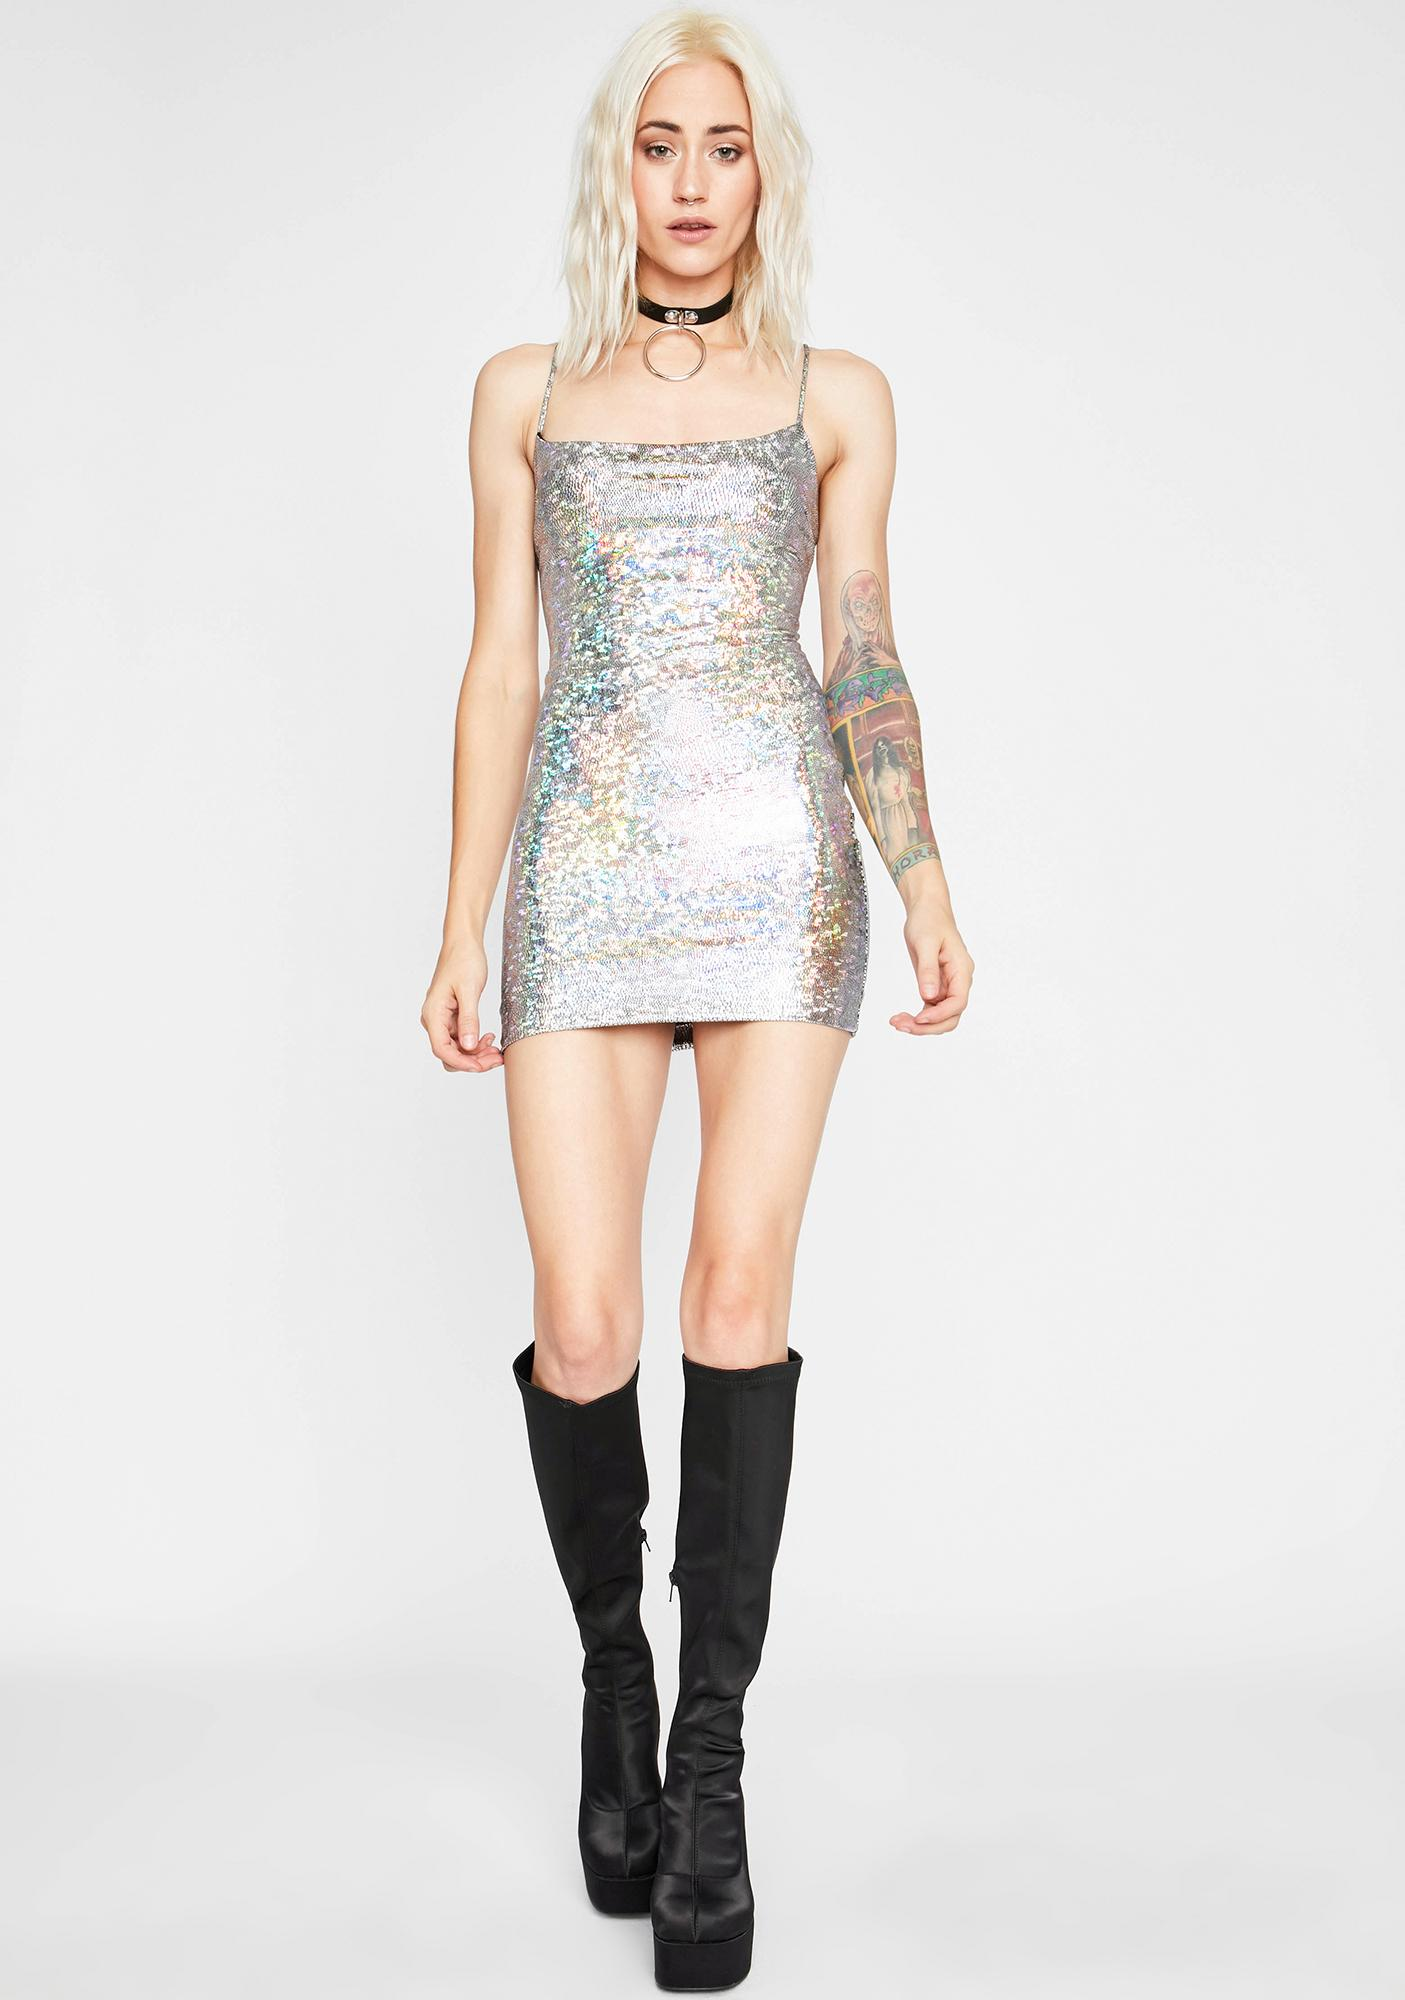 Freaky Space Stunt Holographic Dress